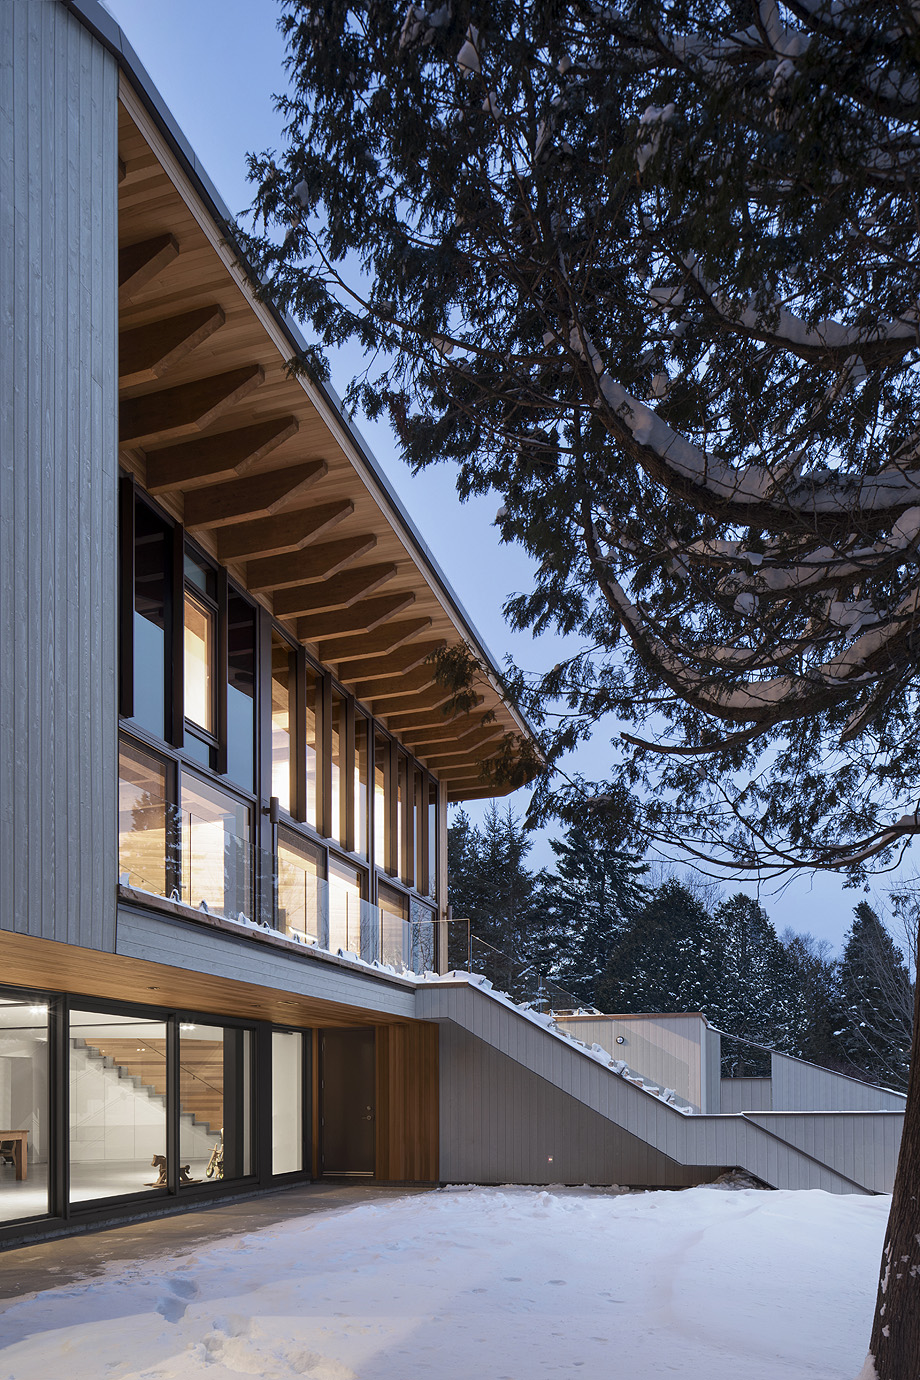 casa accostee de bourgeois lechasseur architects - foto adrien williams (16)